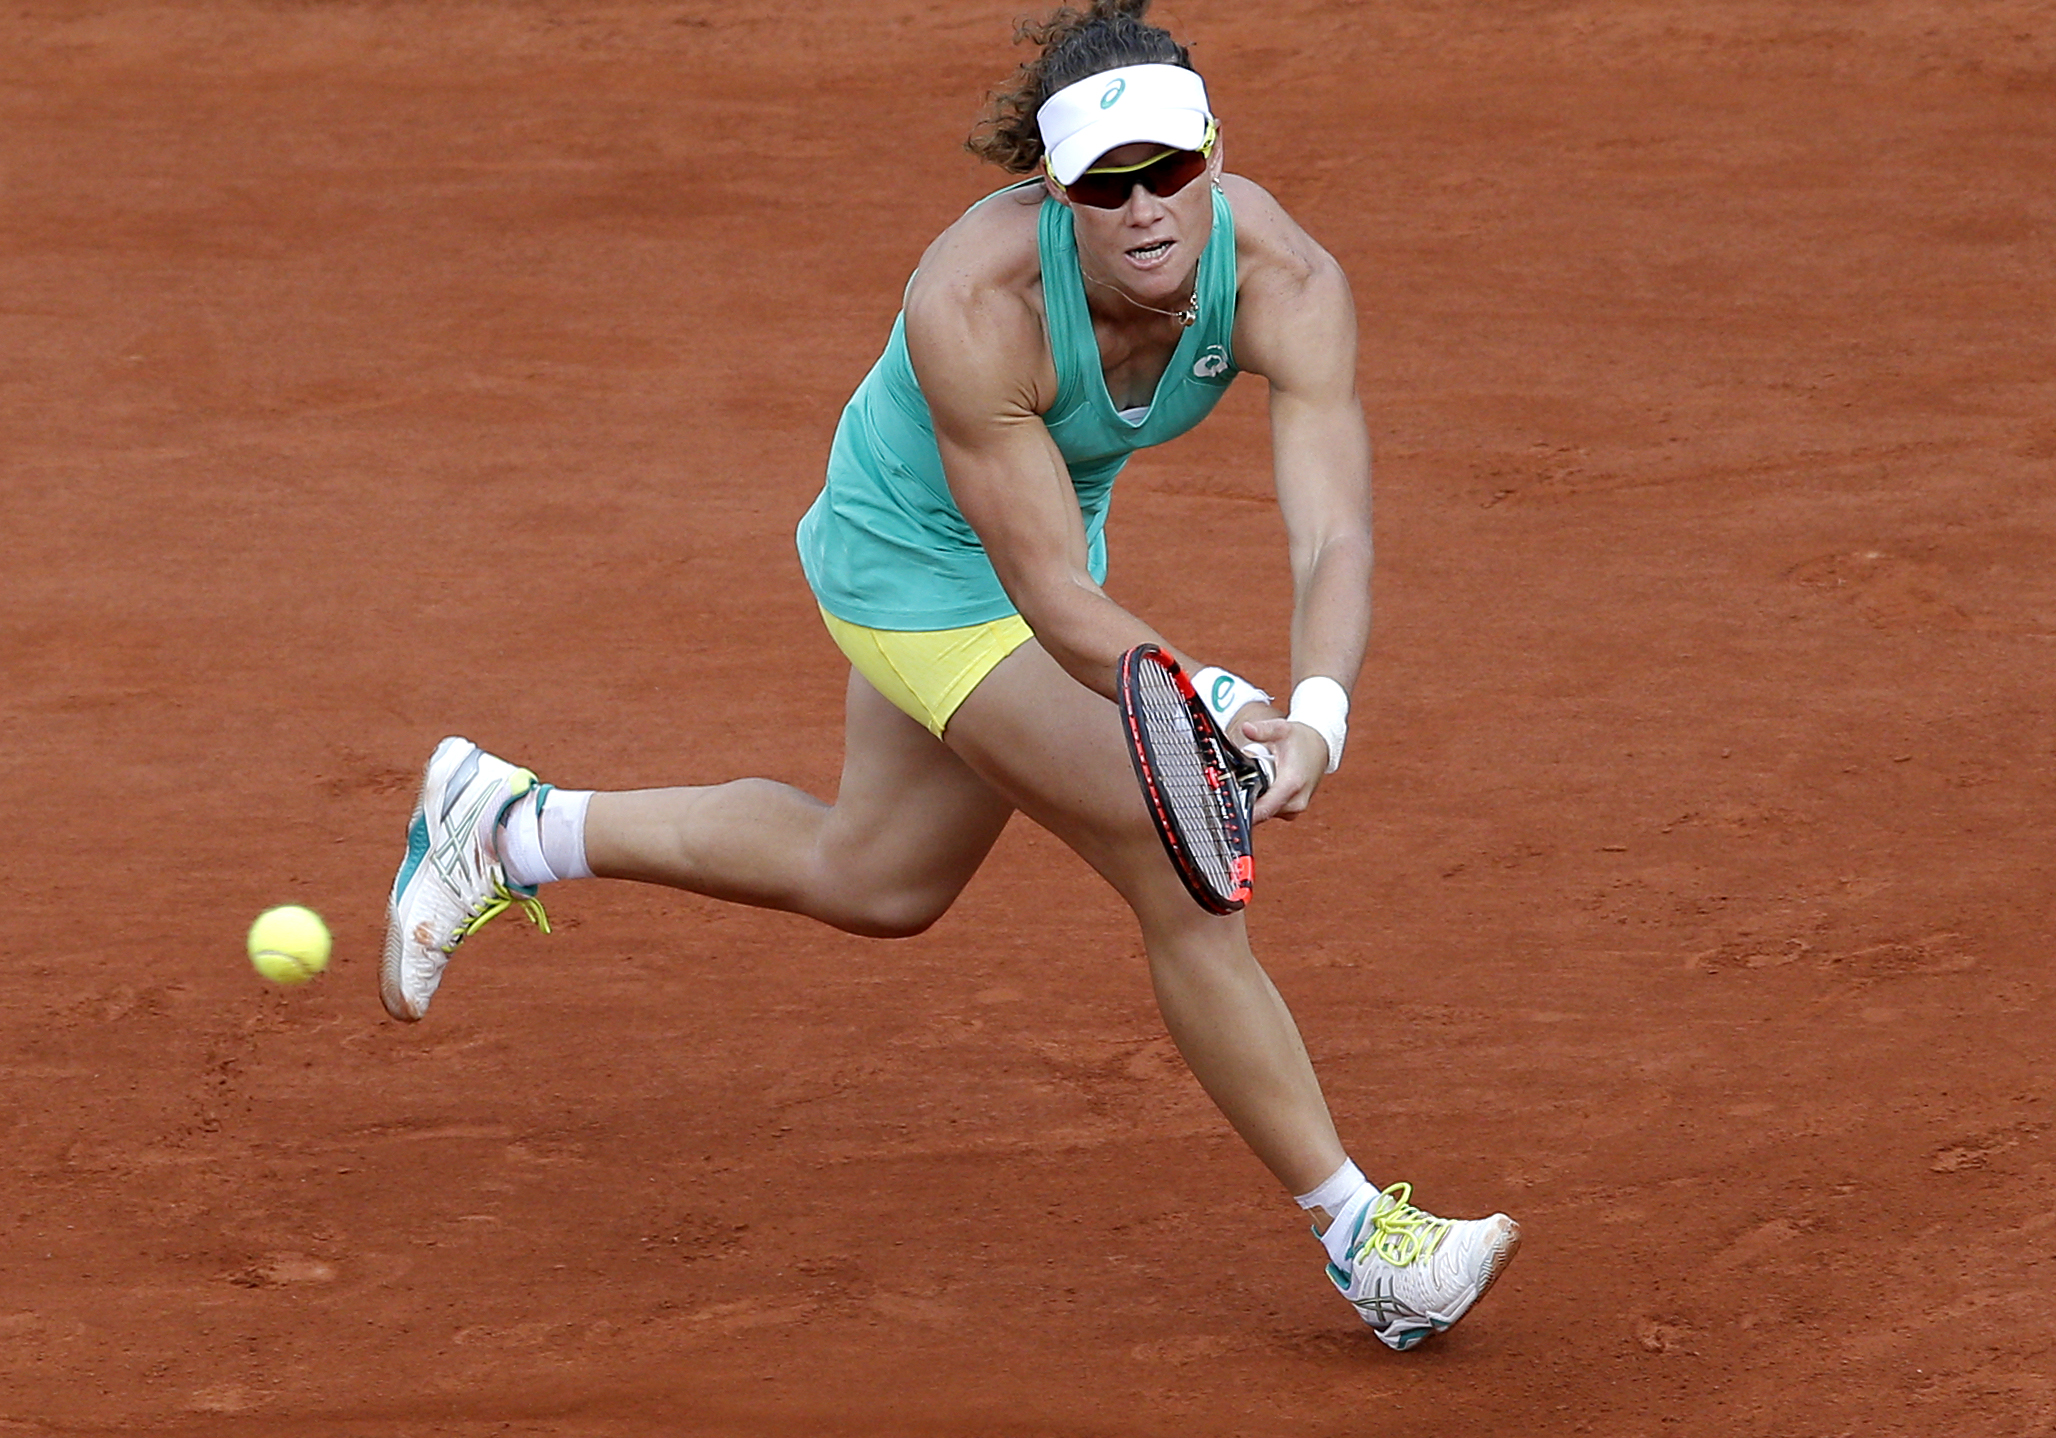 Australia's Samantha Stosur returns the ball to France's Amandine Hesse during their second round match of the French Open tennis tournament at the Roland Garros stadium, Wednesday, May, 27, 2015 in Paris.(AP Photo/Christophe Ena)